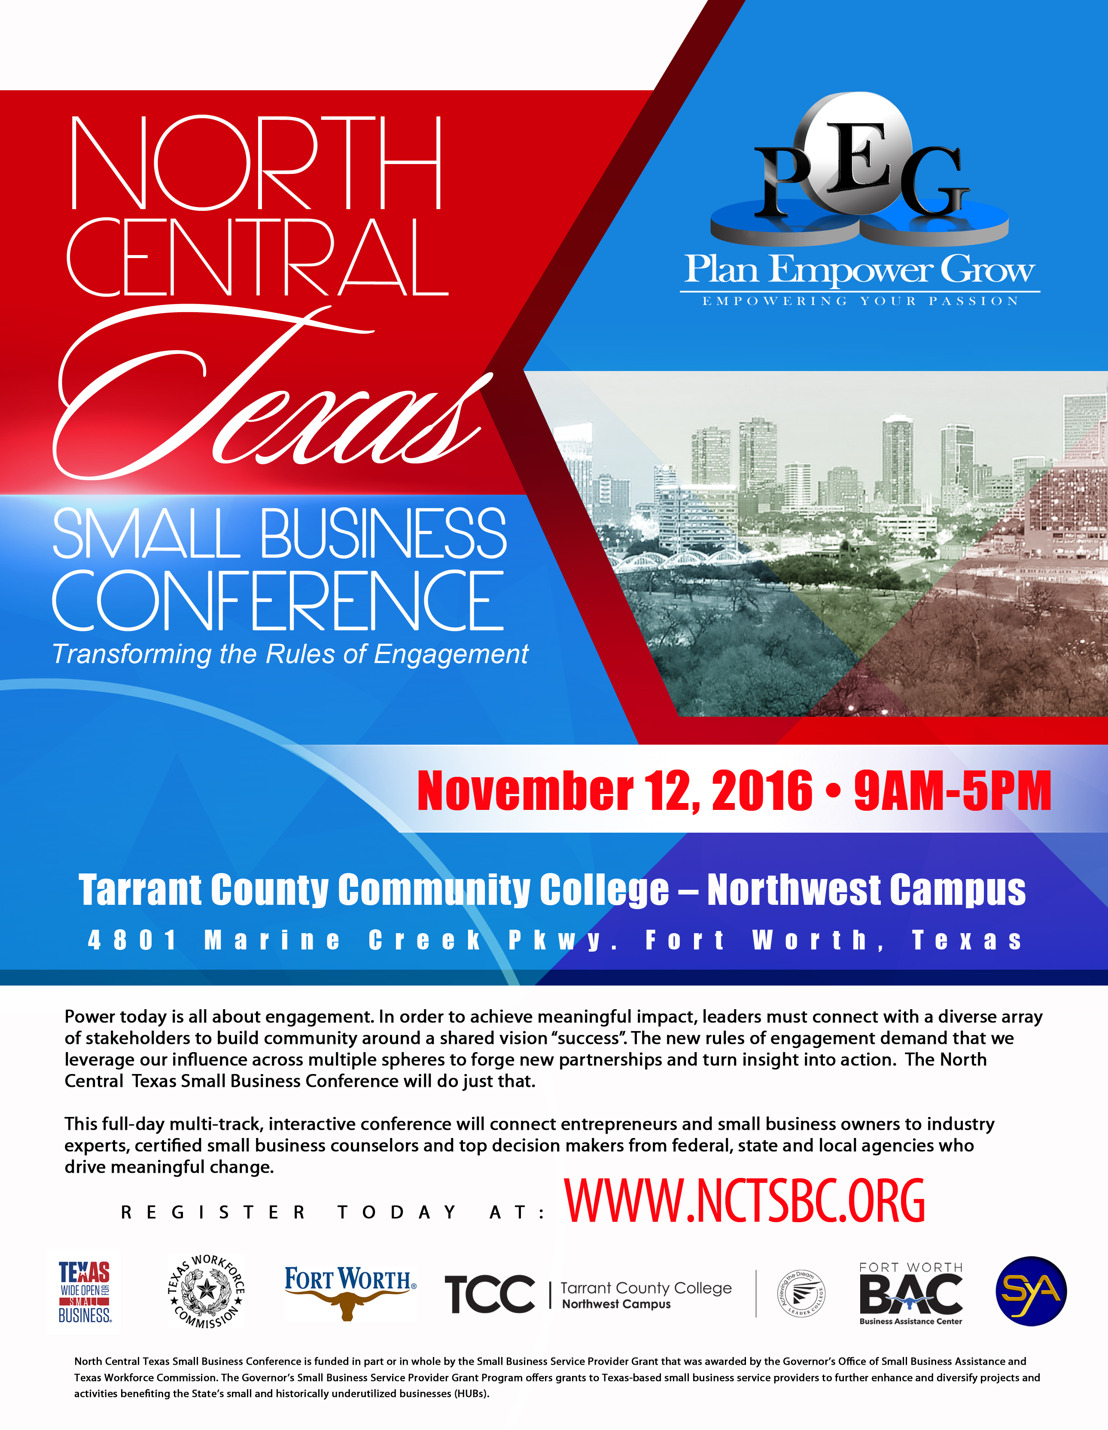 Plan Empower Grow Presents the Inaugural North Central Texas Small Business Conference